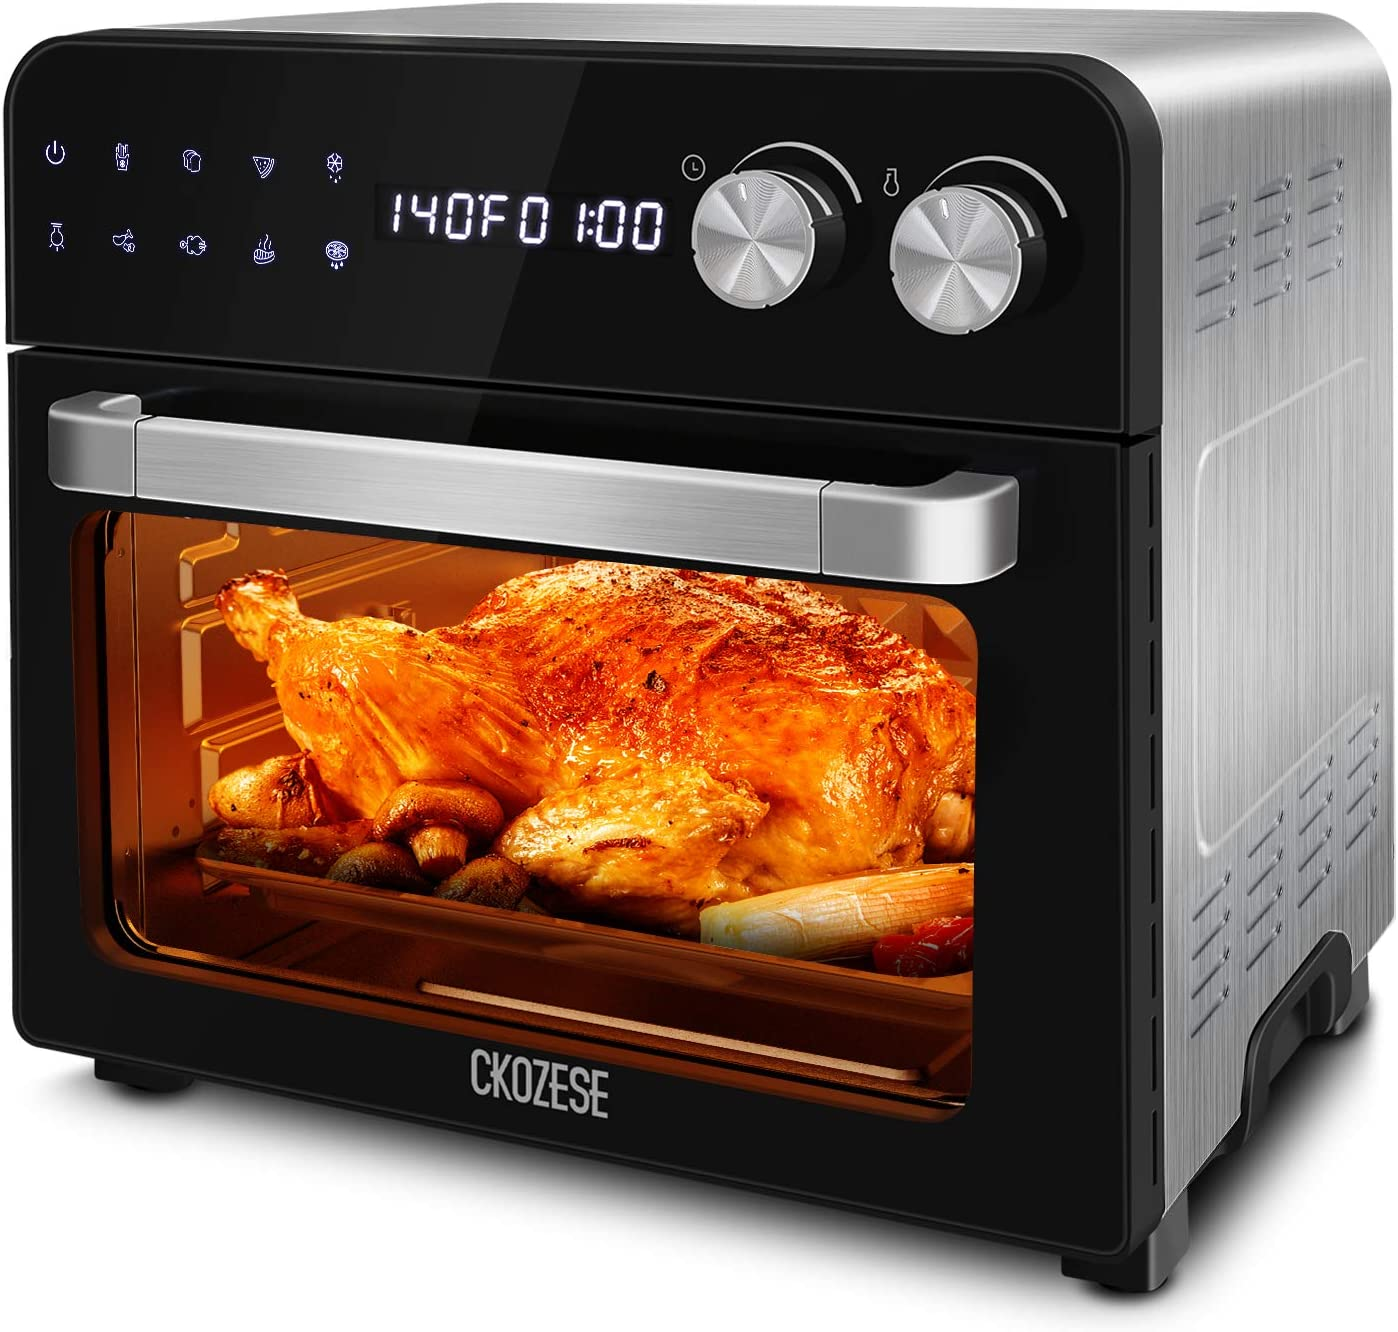 8-in-1 Cool Touch Digital Convection Toaster Oven, Dehydrator/Braking/Roasting/Rotisserie Function, 1700W, 24QT XL Stainless Steel Countertop Air Fryer Oven with Touchscreen, 7 Accessories & Recipe